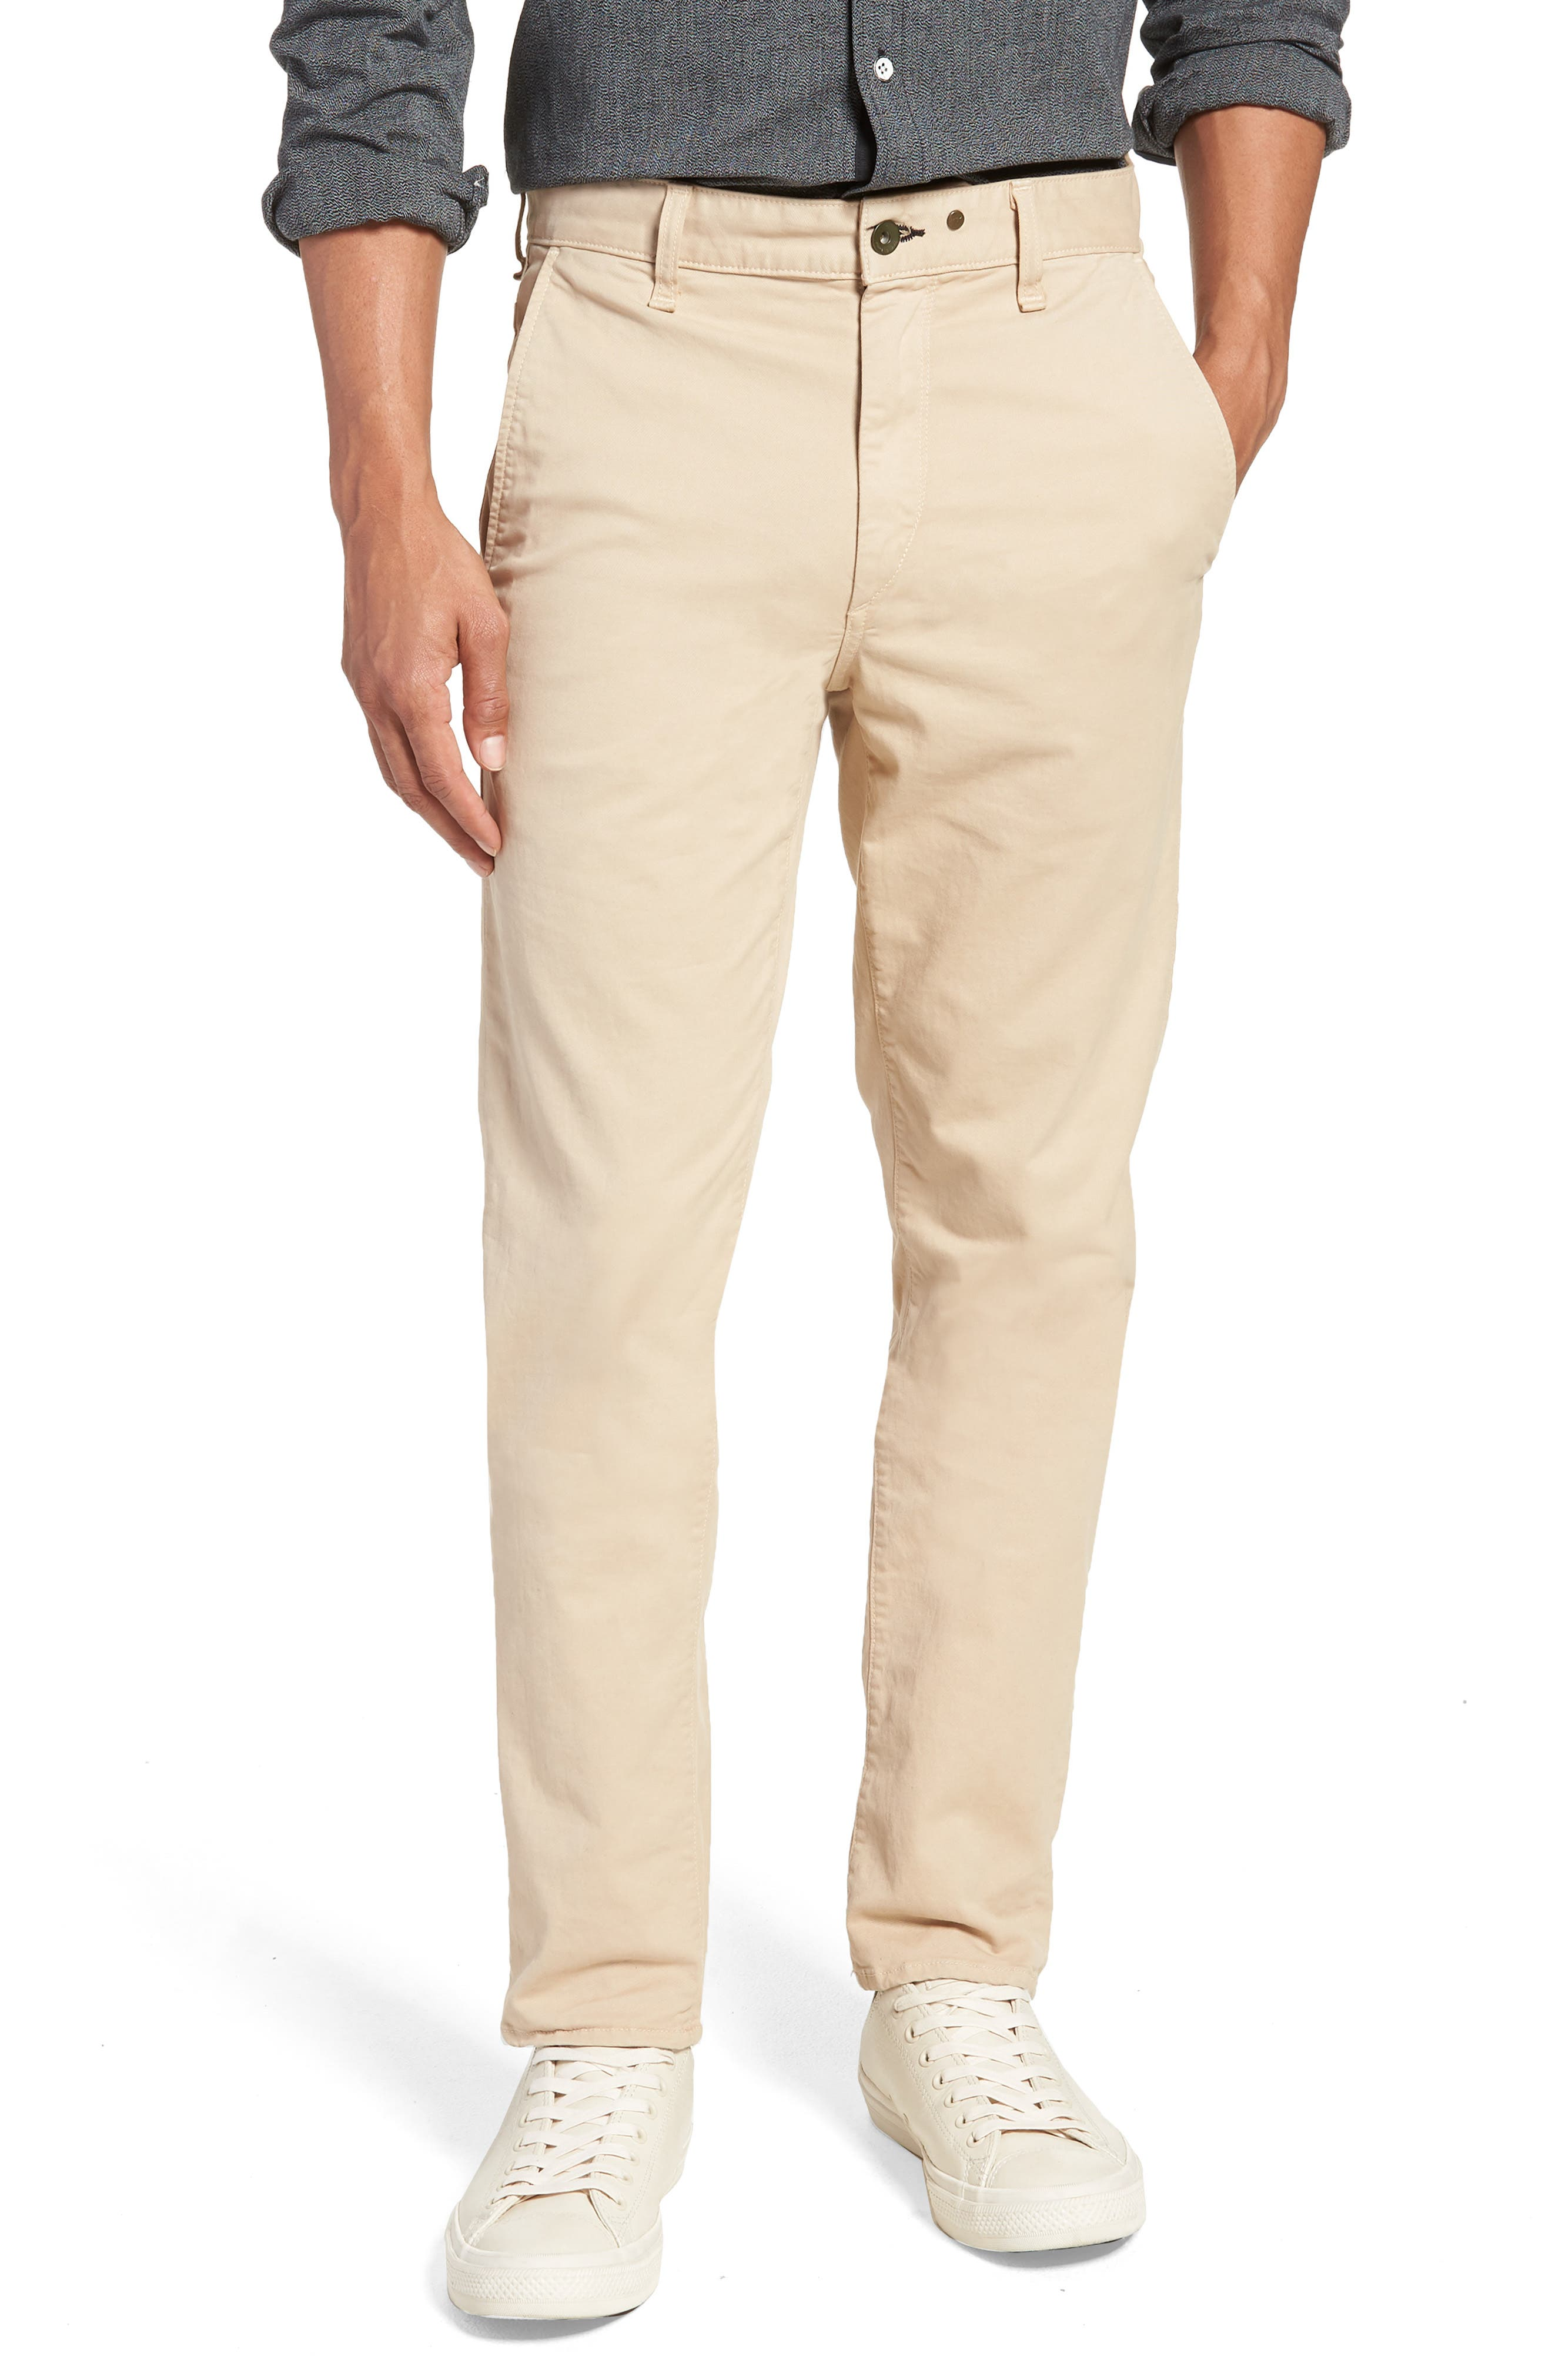 Fit 2 Chinos,                         Main,                         color, BEIGE